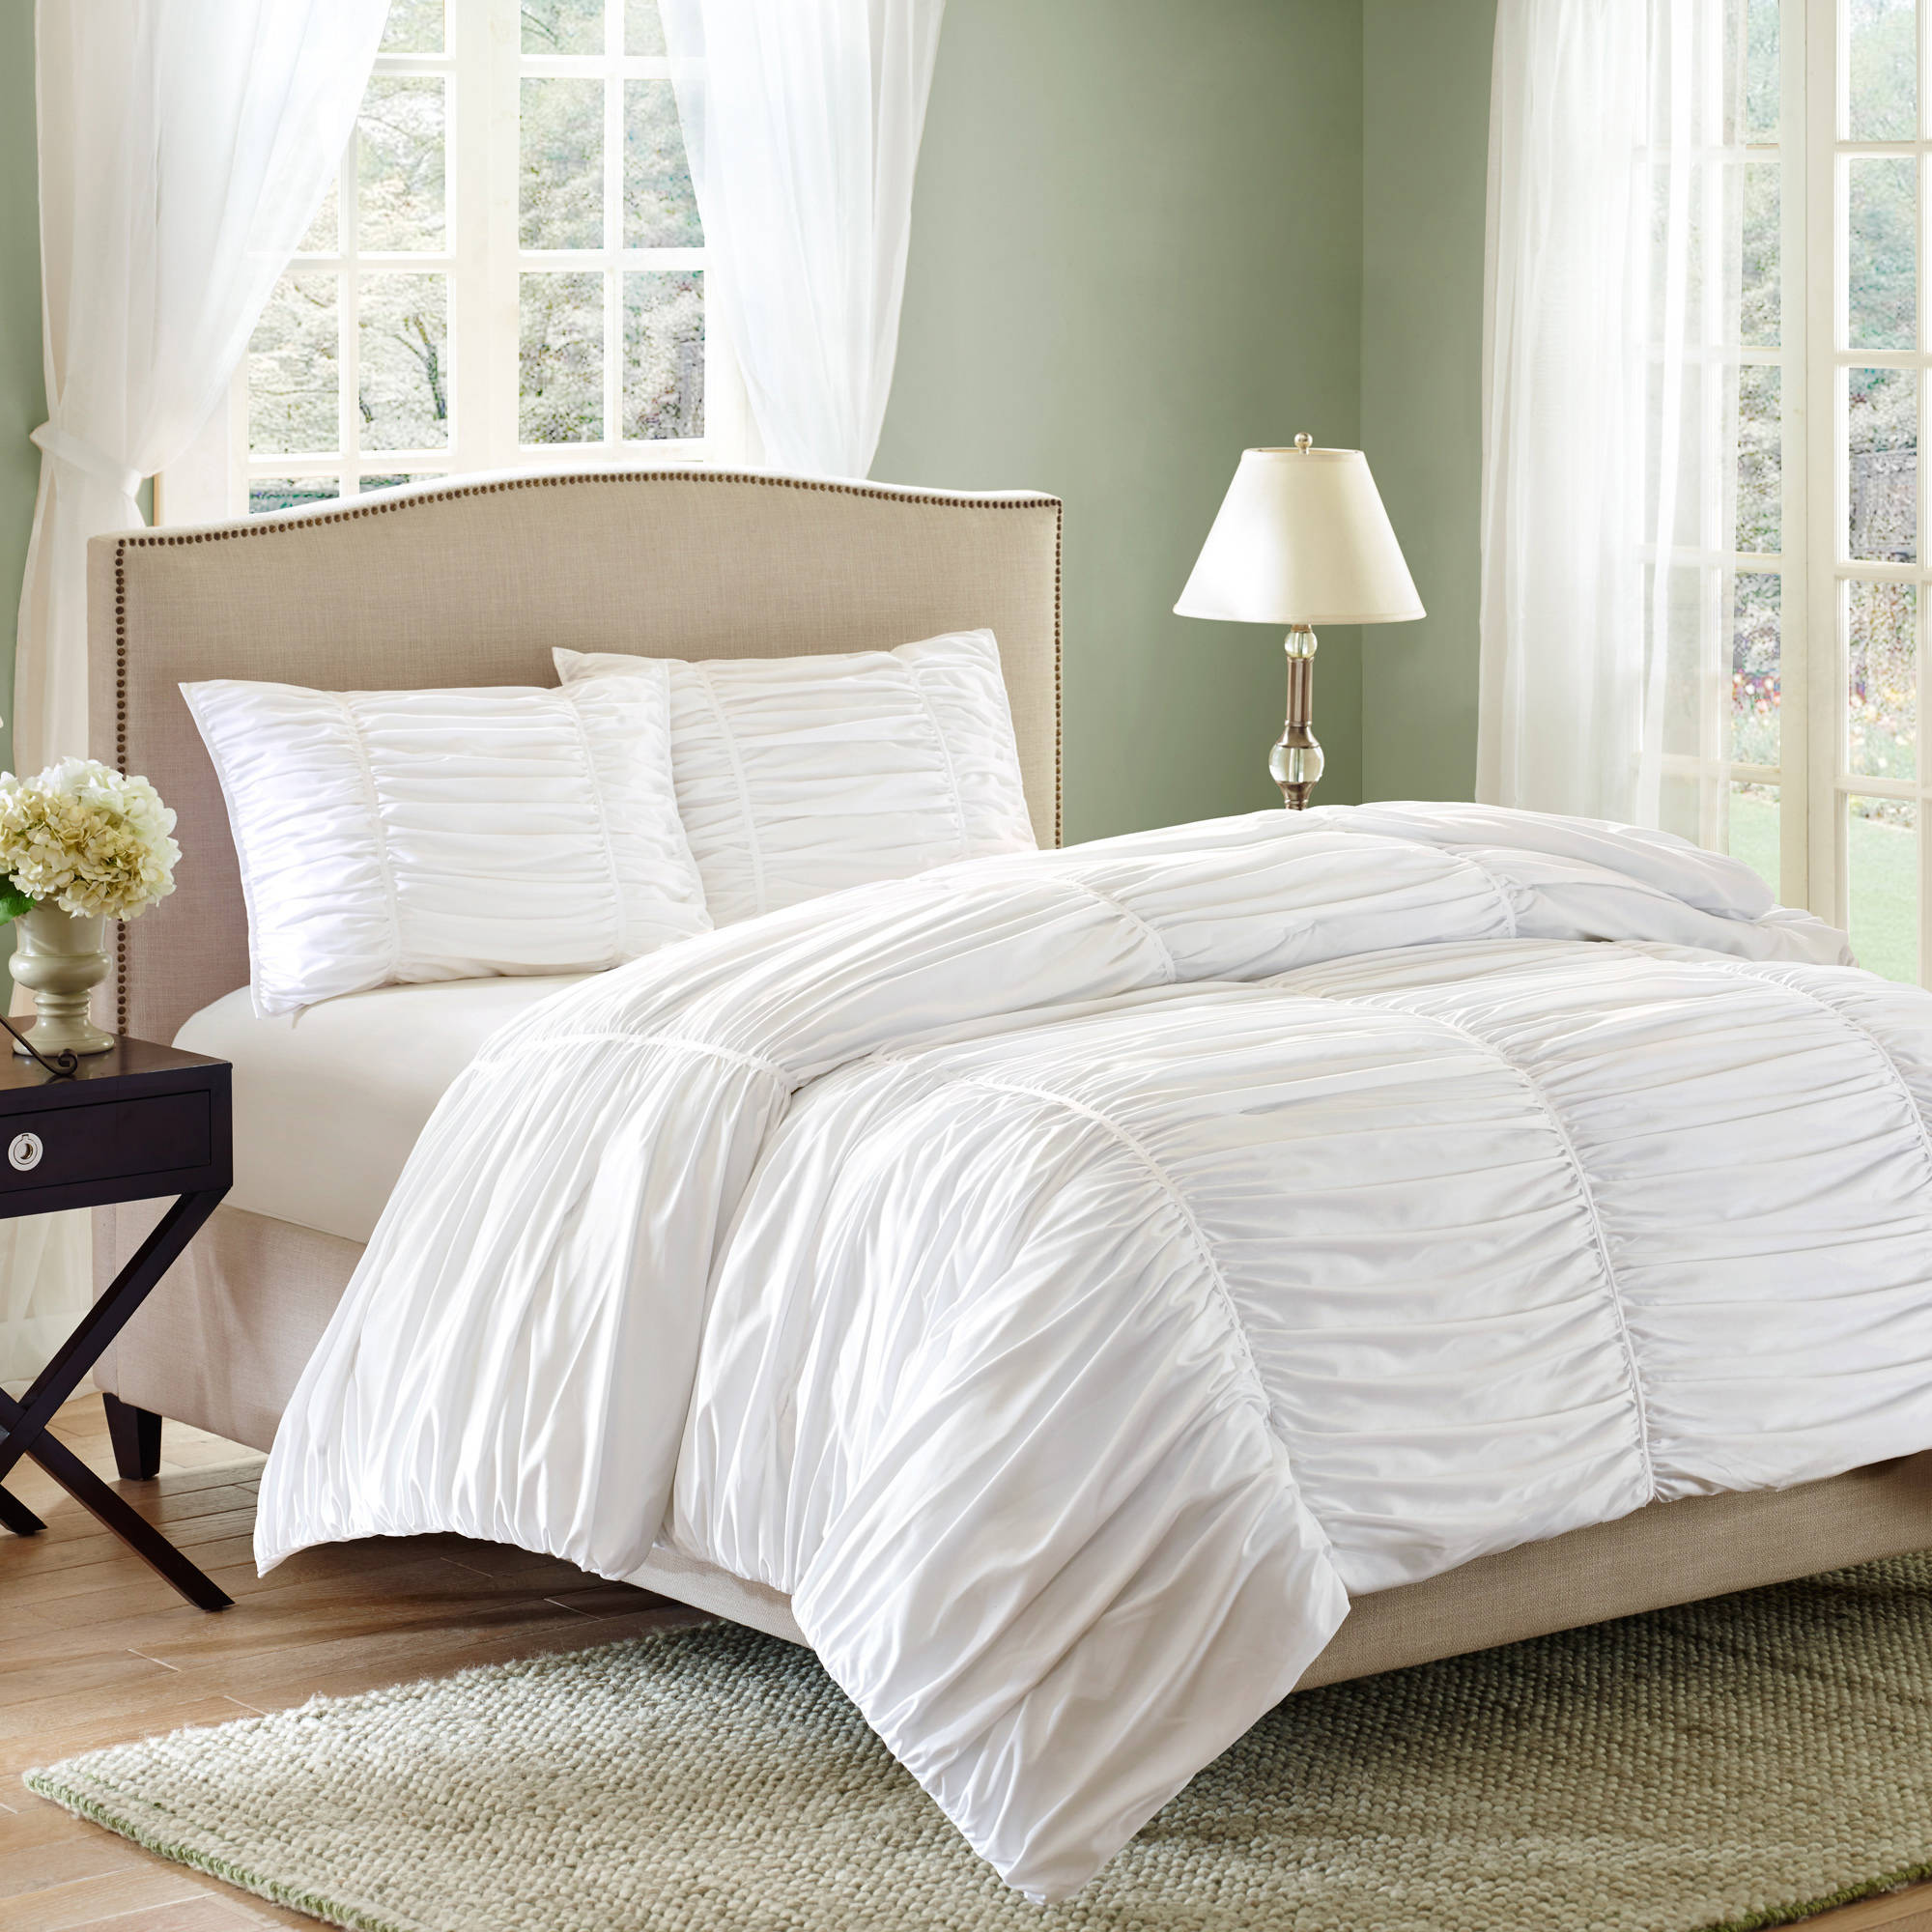 Better Homes and Gardens Ruched 3-Piece Bedding Comforter Mini Set